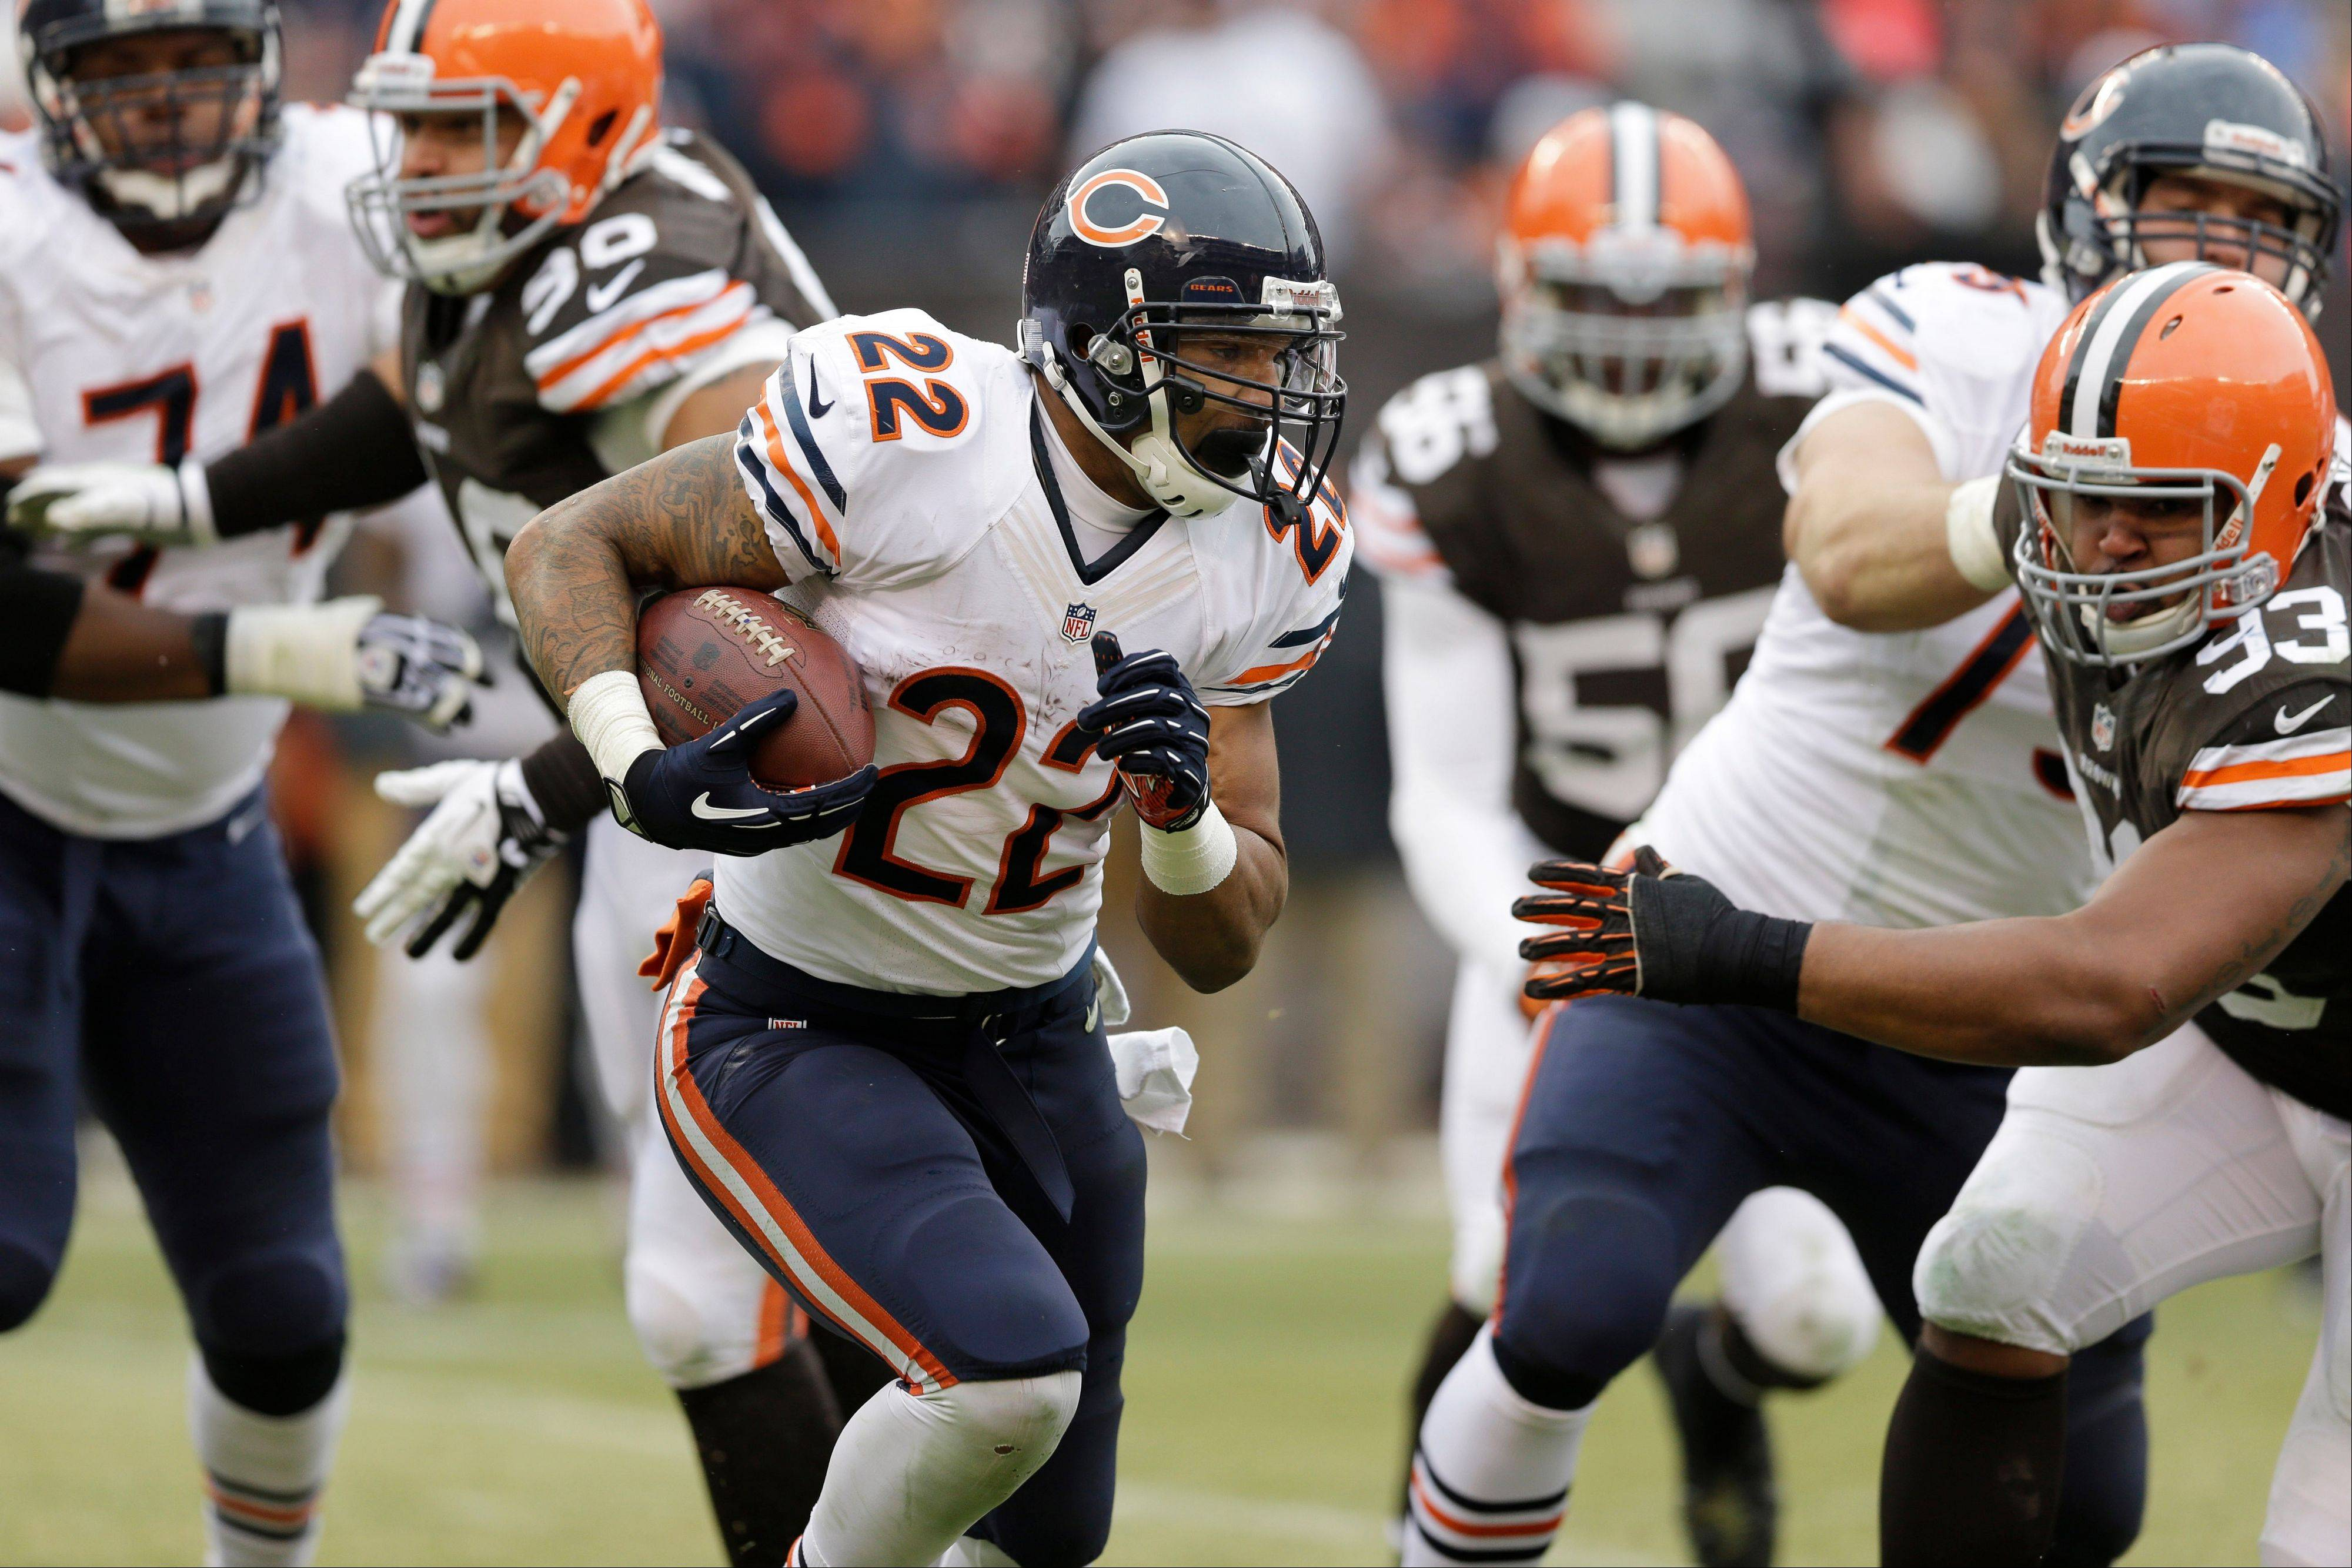 Chicago Bears running back Matt Forte (22) runs against the Cleveland Browns in the second quarter.